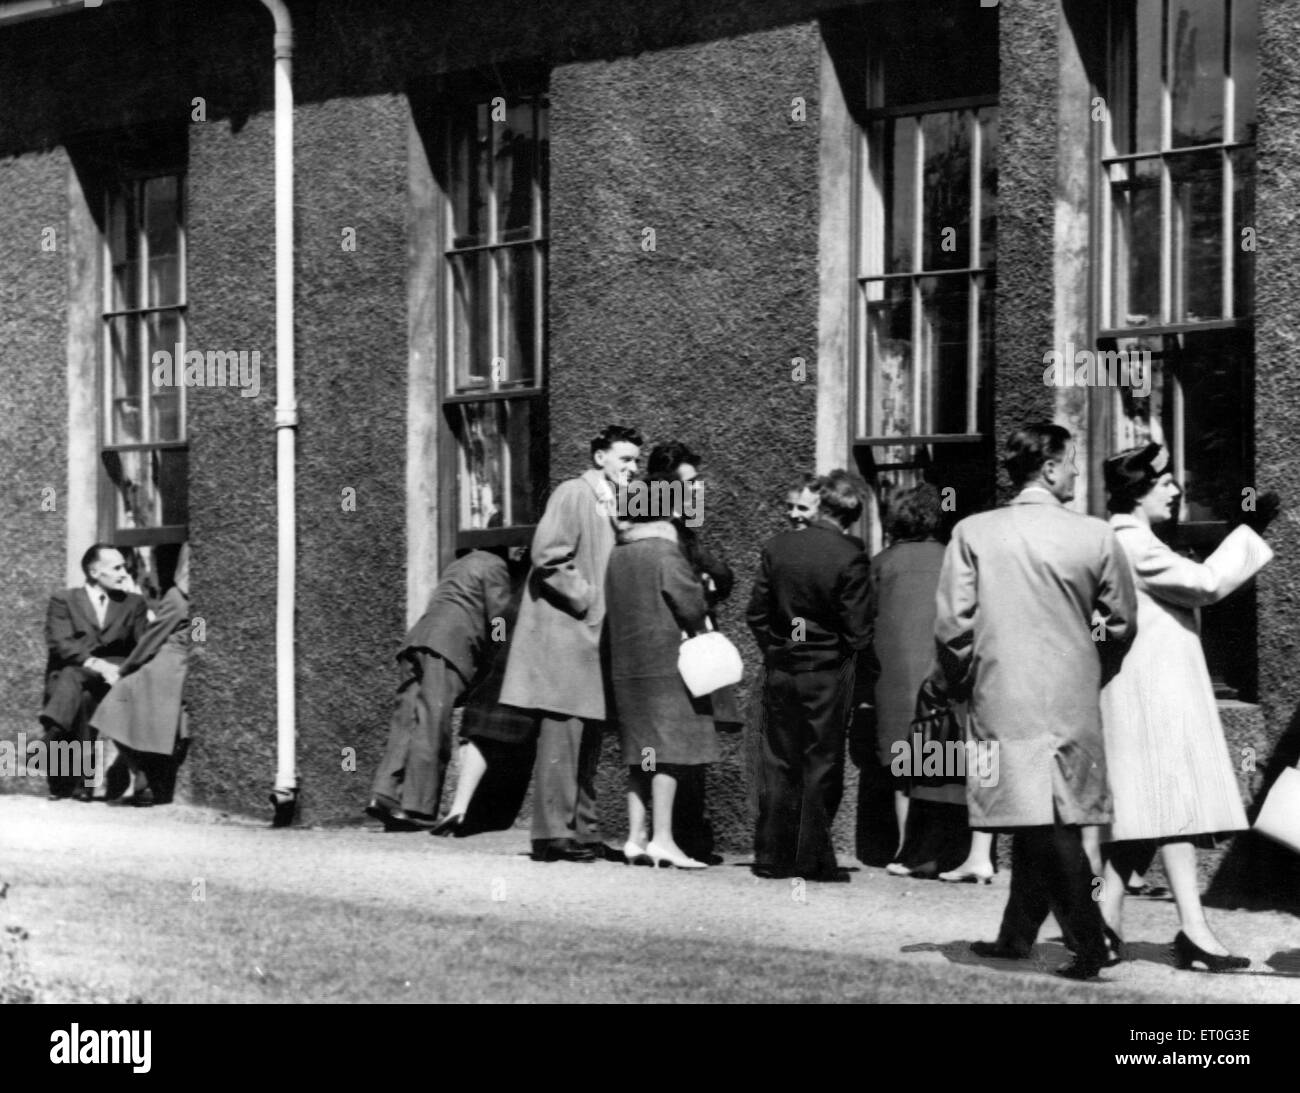 Typhoid outbreak. Aberdeen. Scotland. 1964. In 1964 there was an outbreak of typhoid in the city of Aberdeen, Scotland. - Stock Image